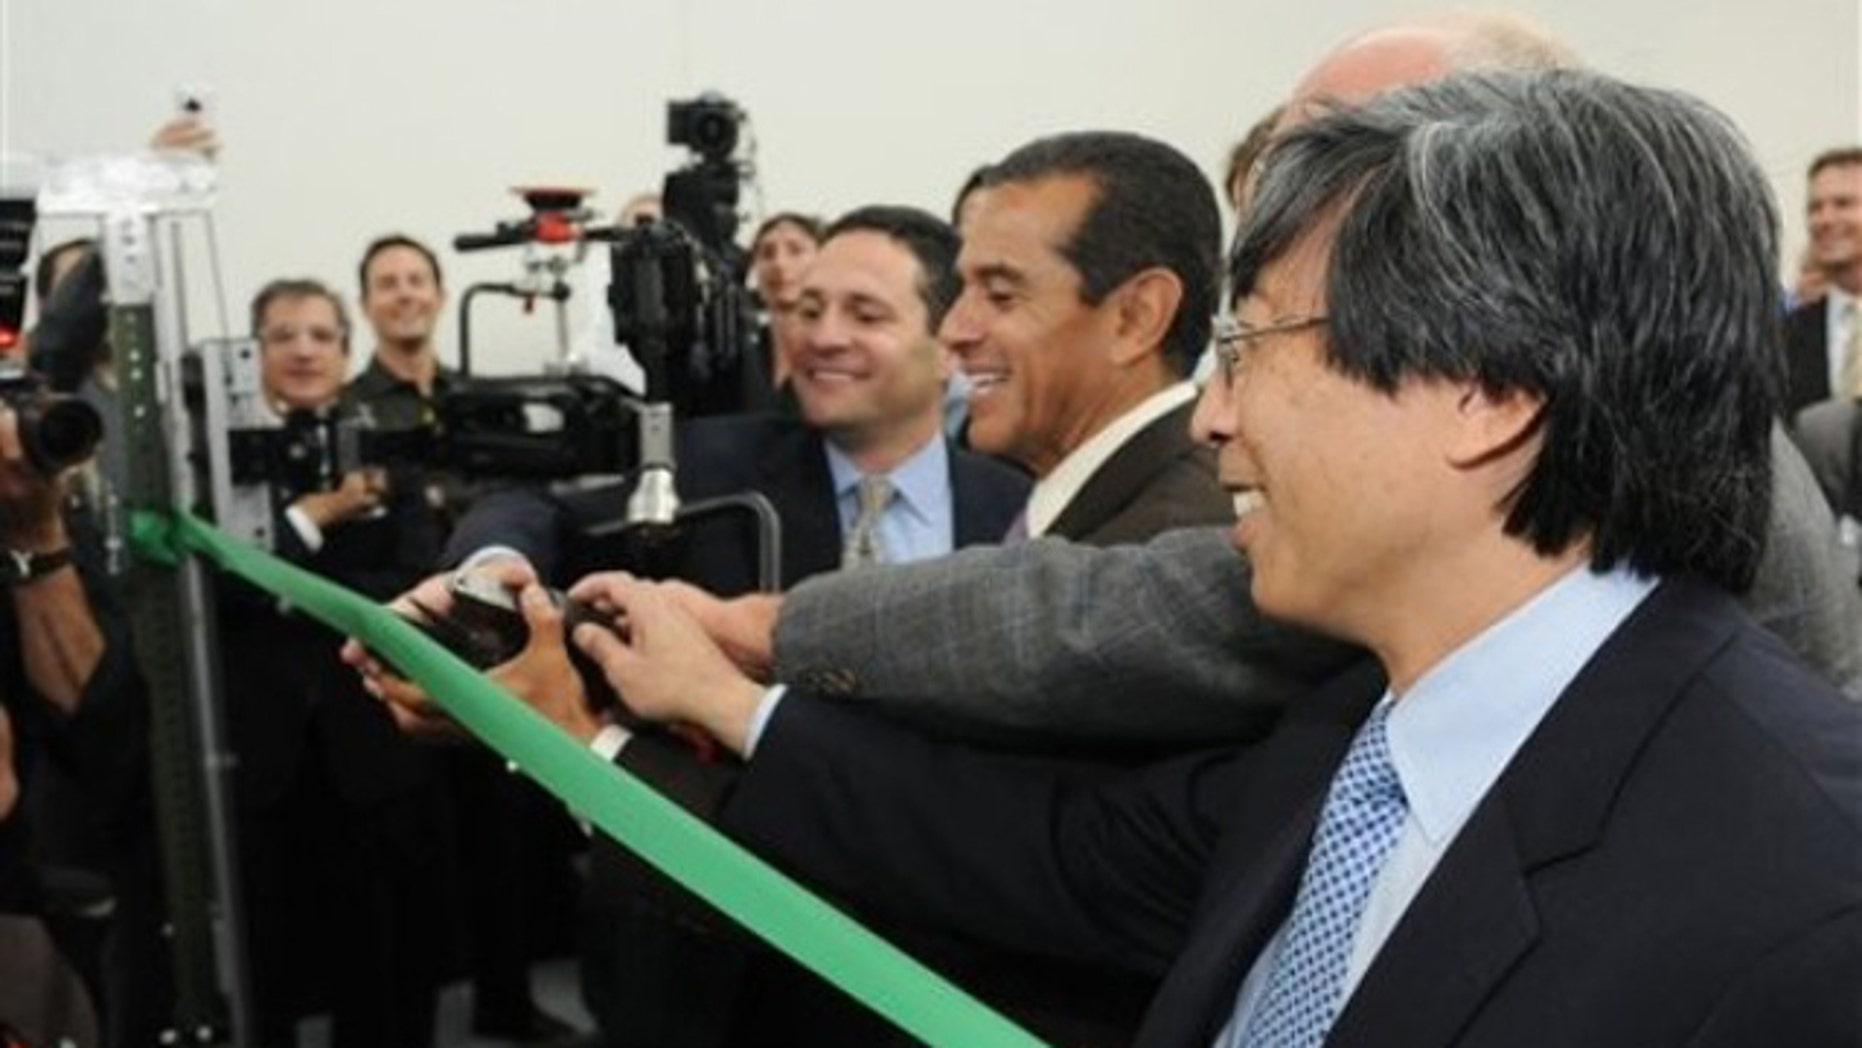 June 8, 2011: Dr. Patrick Soon-Shiong, right, is seen at an event for a new heavy aerospace cutting tool in Los Angeles.